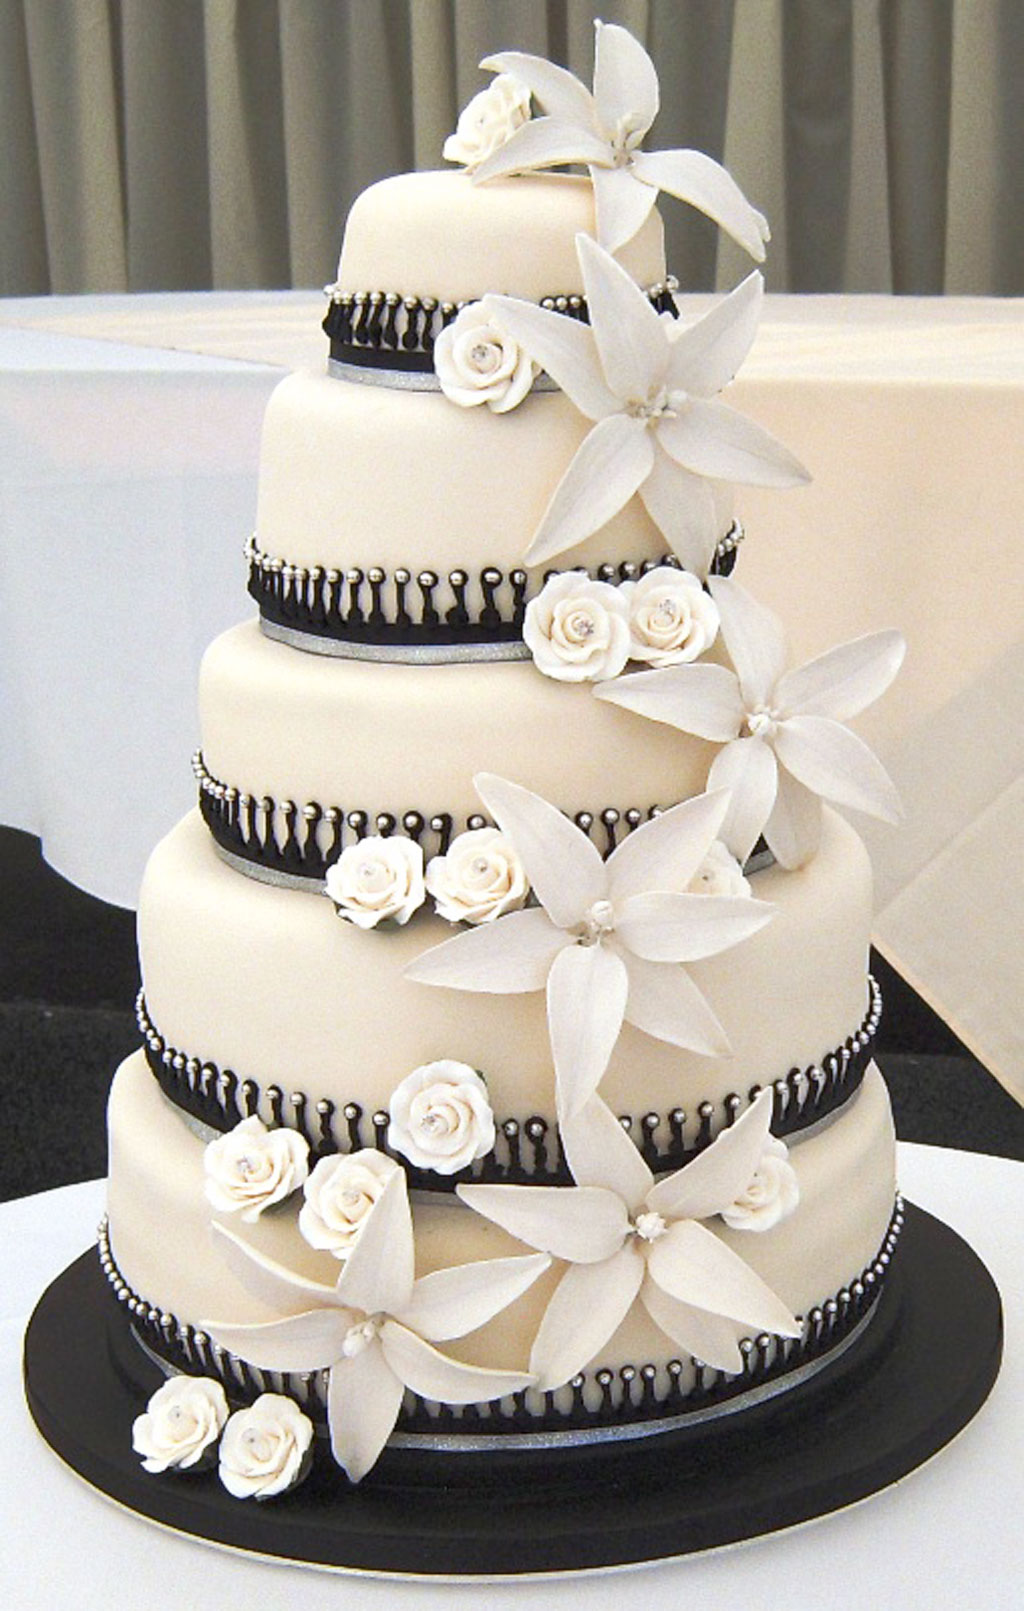 white wedding cake designs black white wedding cake designs wedding cake cake ideas 27343